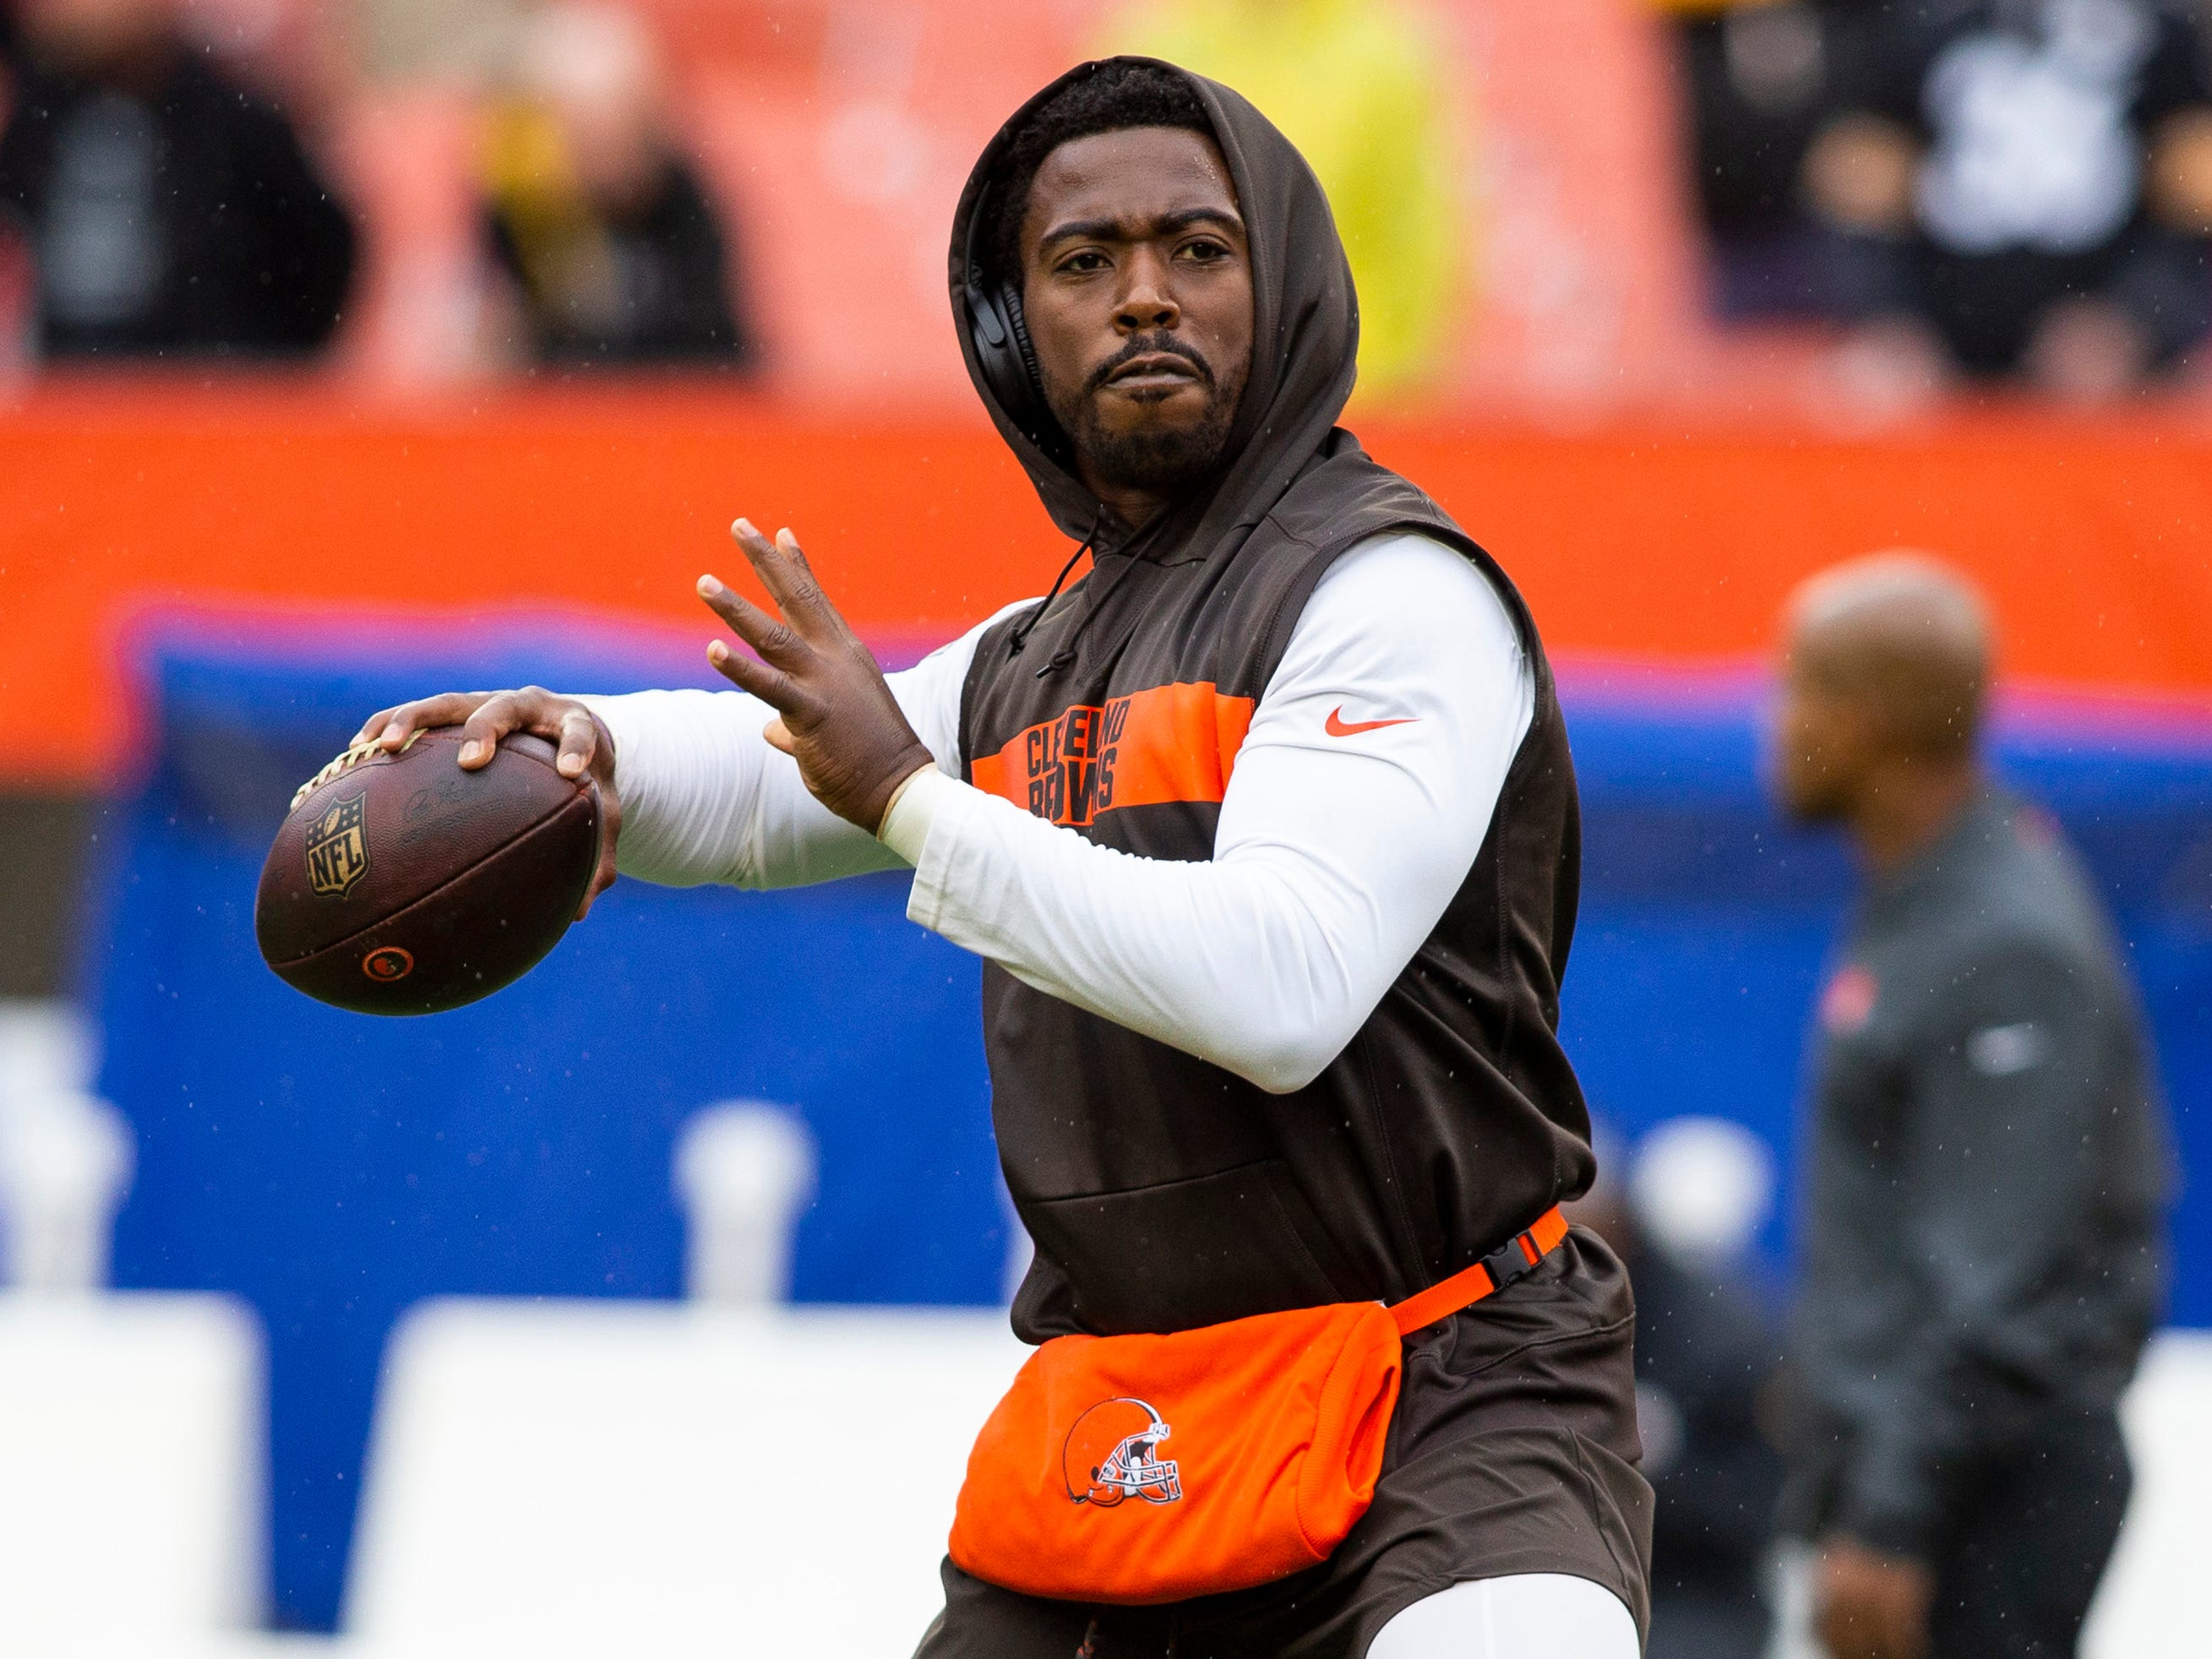 Cleveland Browns quarterback Tyrod Taylor (5) throws the ball during warmups before the game at FirstEnergy Stadium.